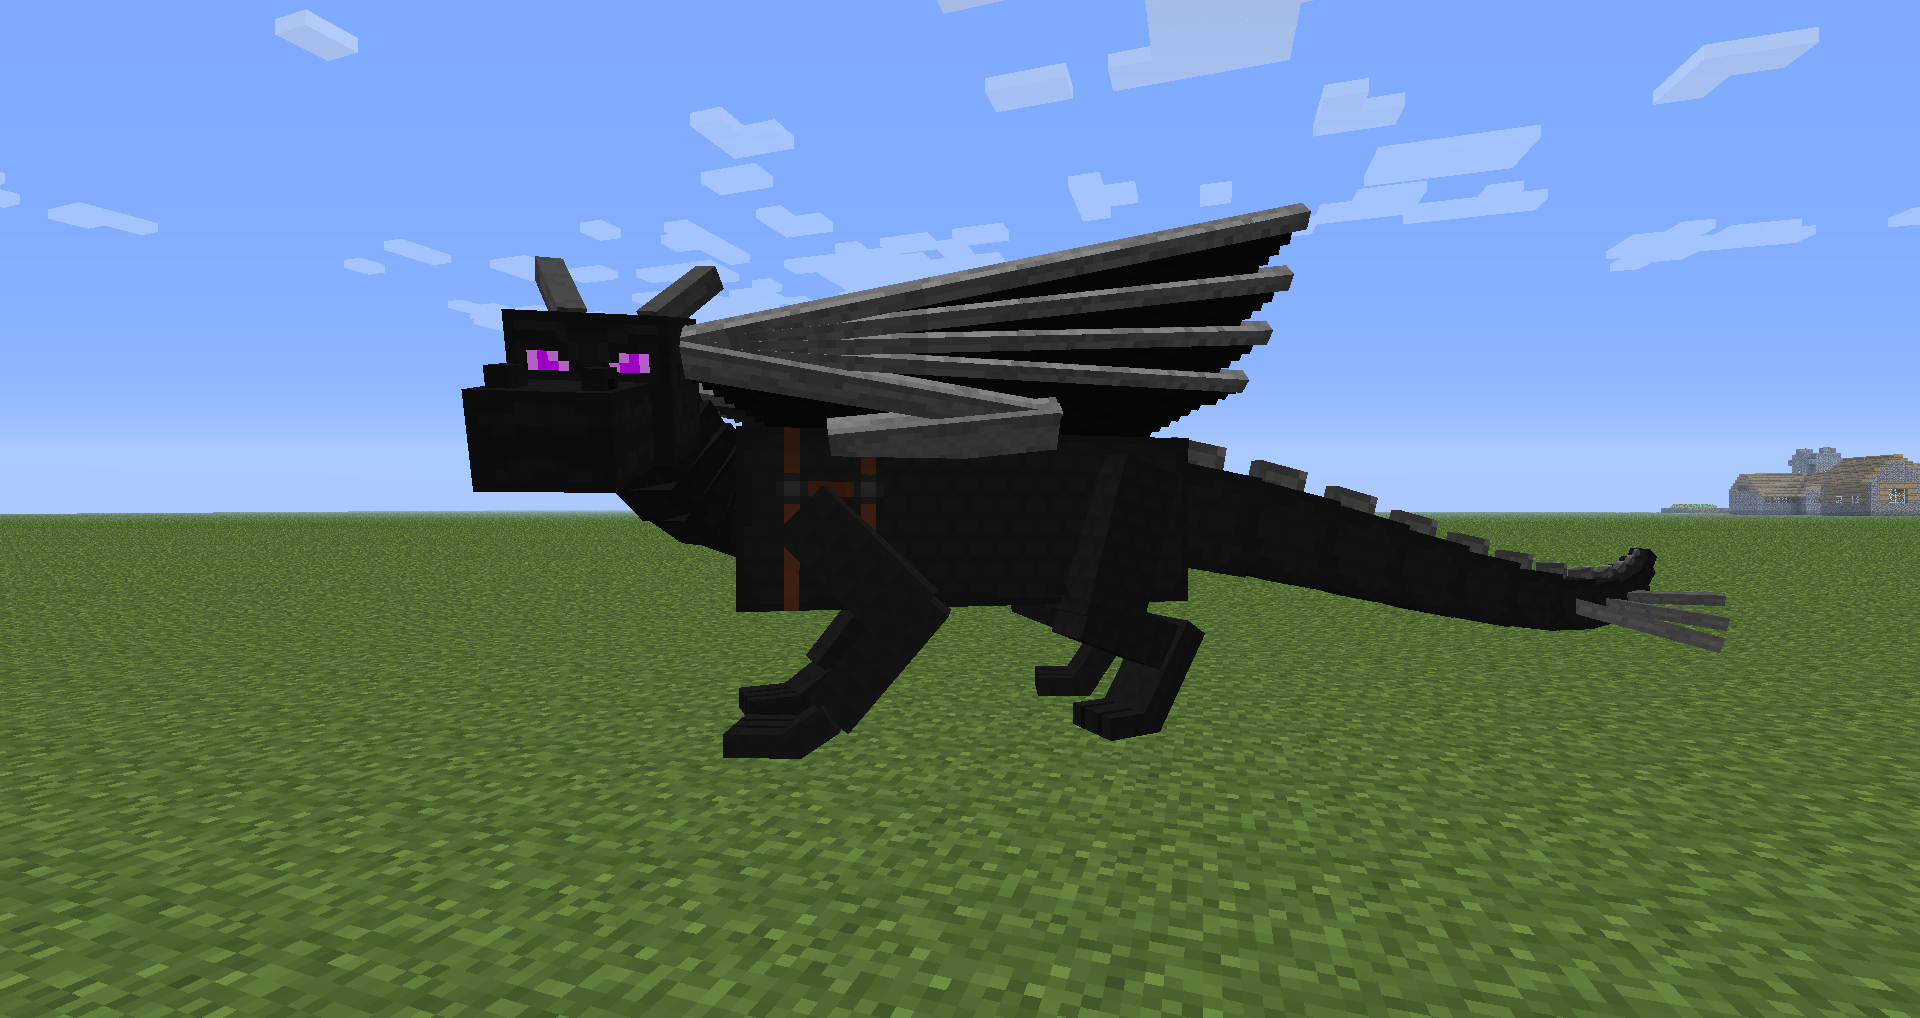 The Tamed Minecraft Ender Dragon By Mid0456 On DeviantArt